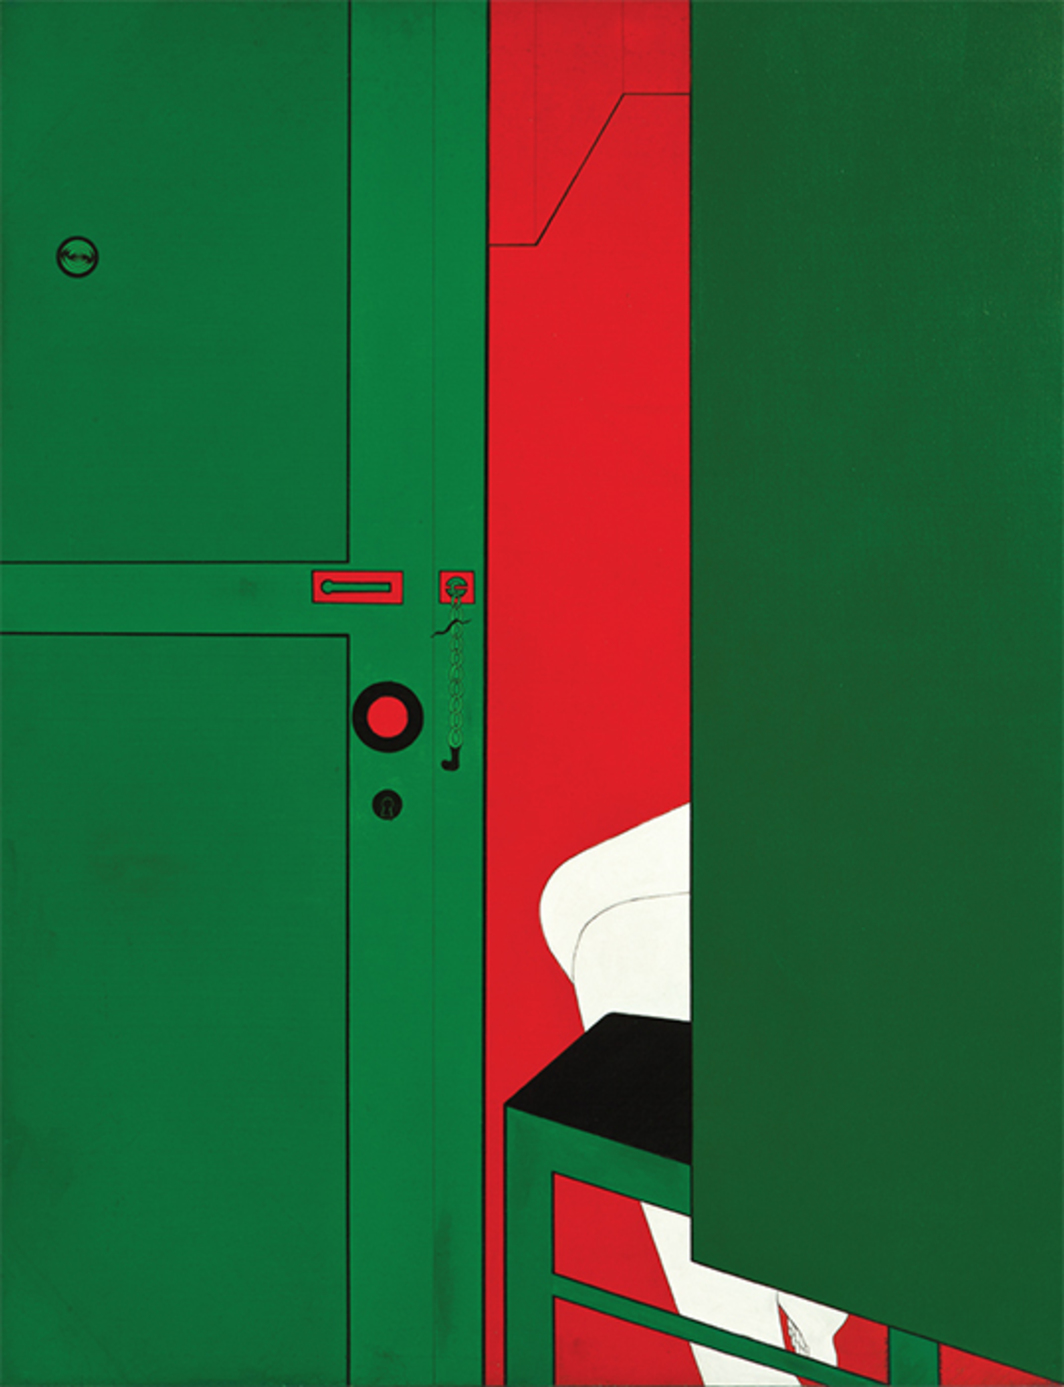 "Wanda Pimentel, Untitled—Série Envolvimento, 1967, acrylic on canvas, 45 3/4 × 35 1/8"". From ""International